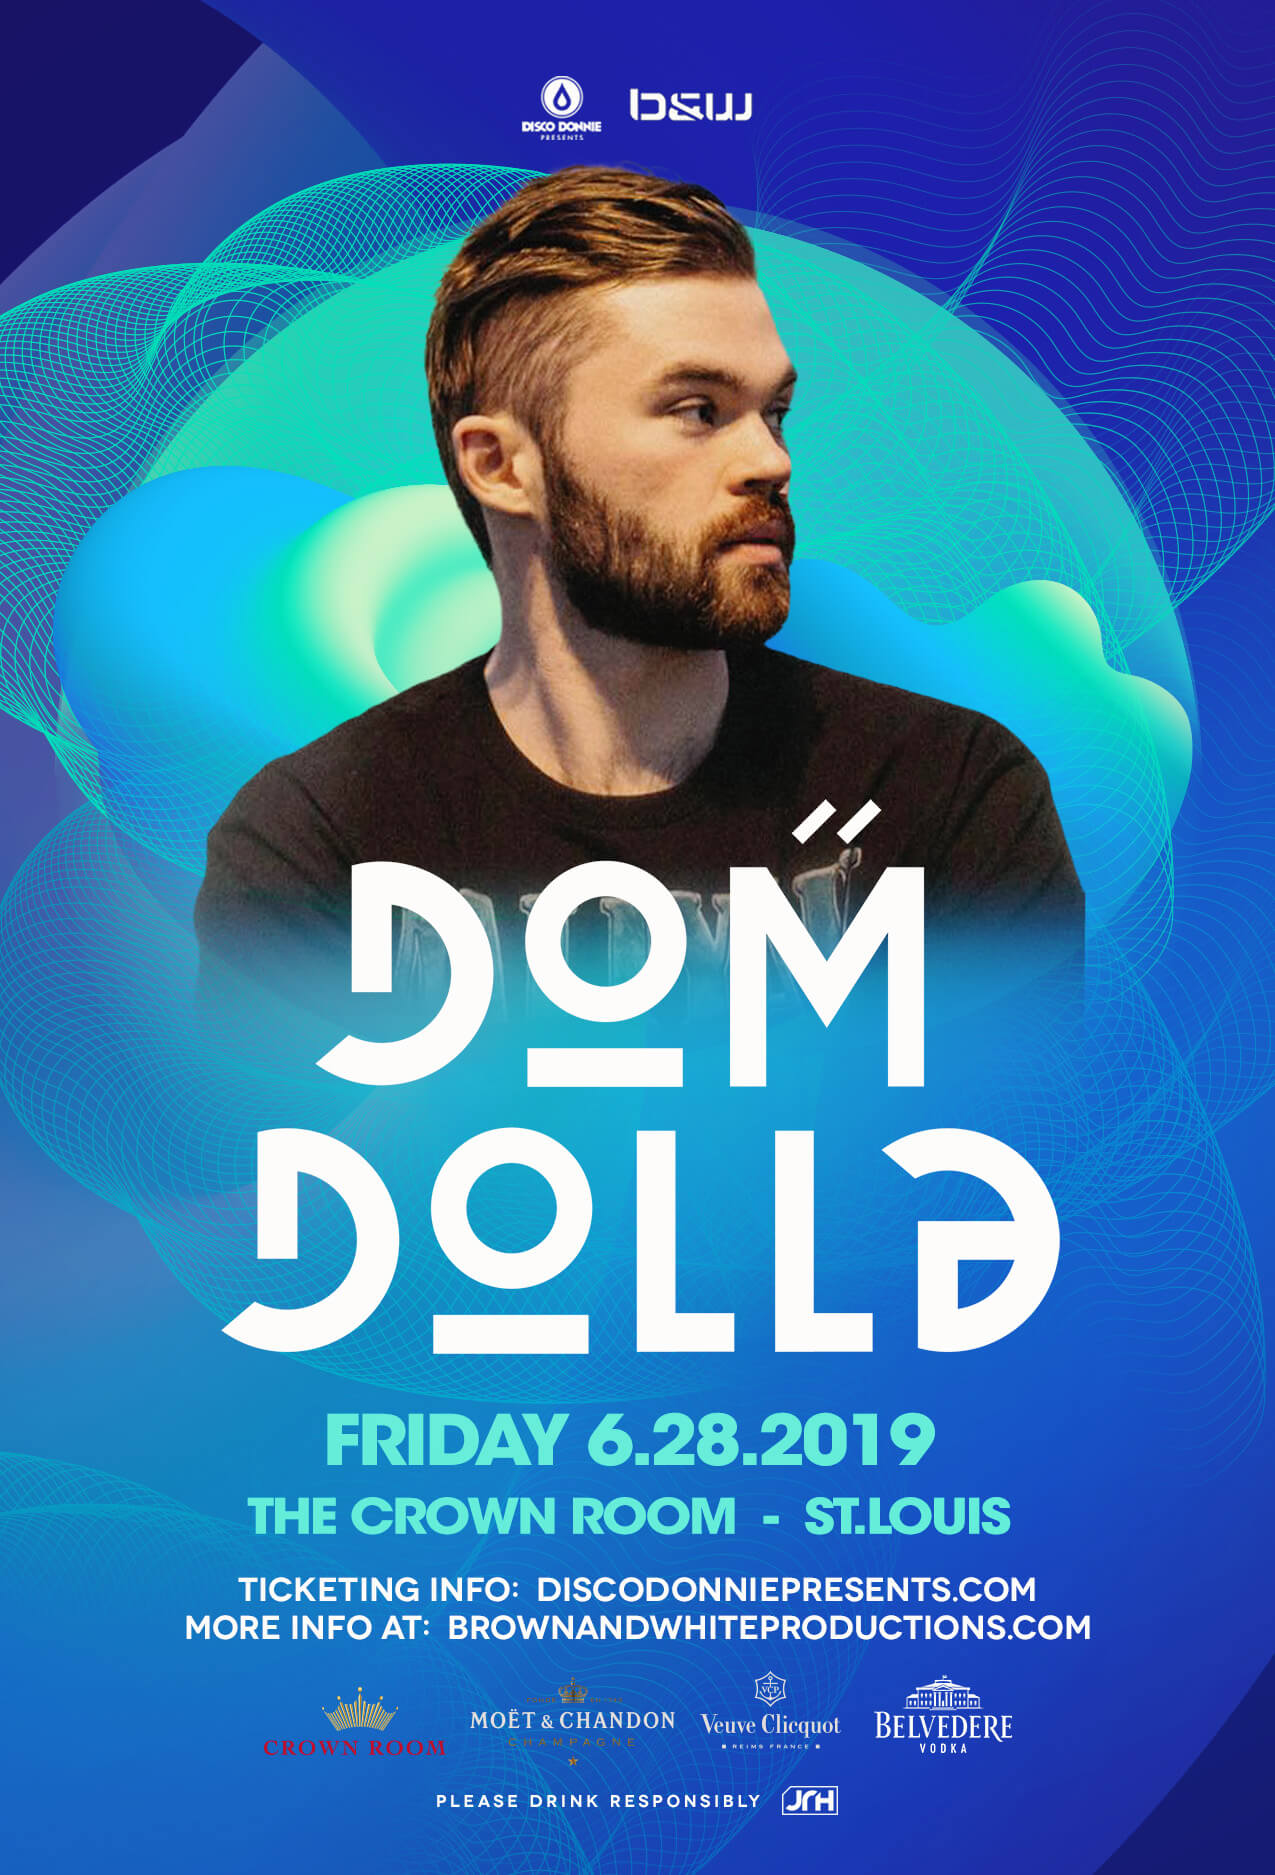 Dom Dolla in St Louis